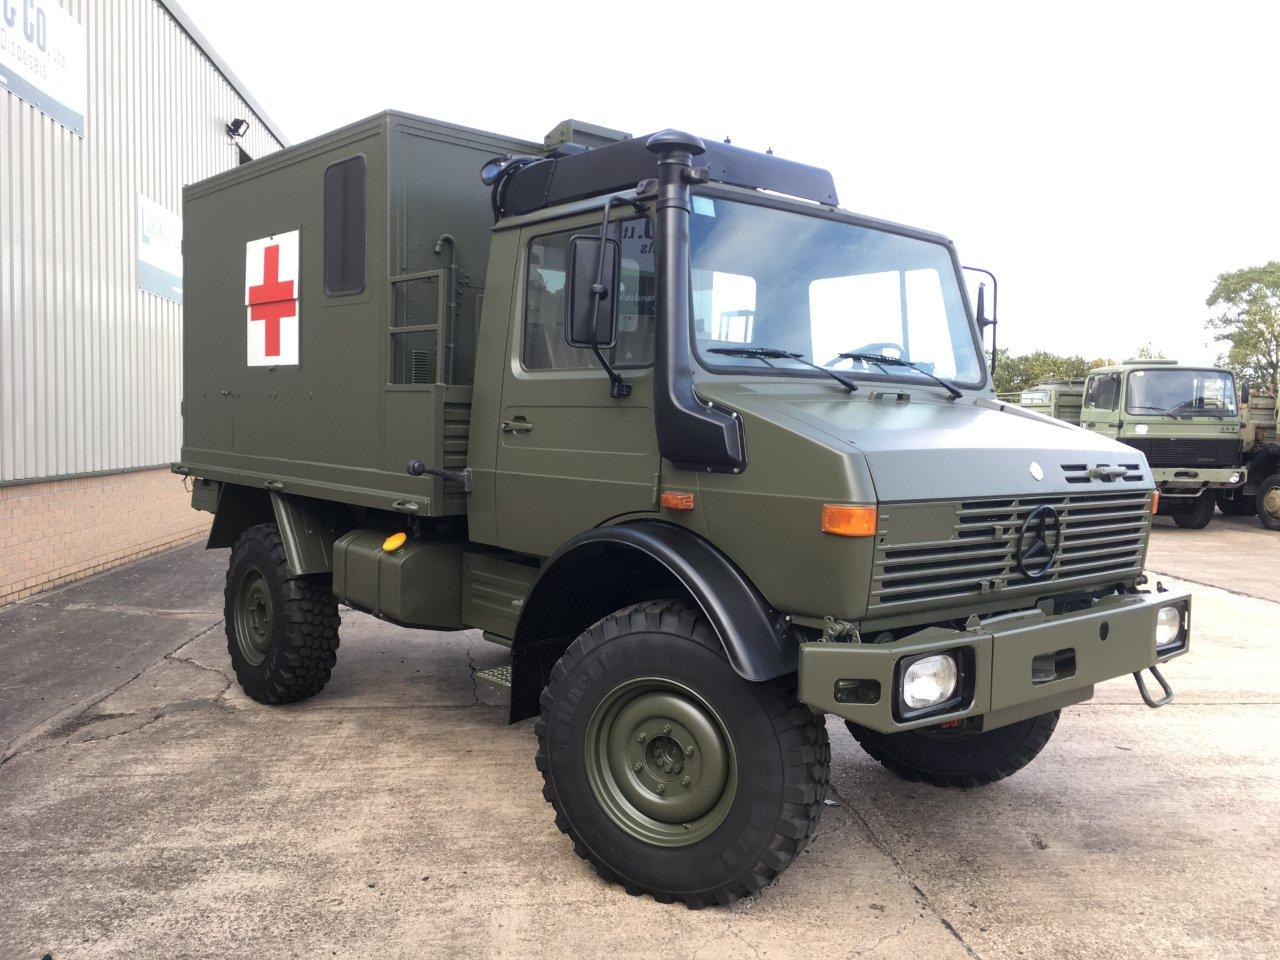 Mercedes Benz Unimog U1300L 4x4 Medical Ambulance | Military Land Rovers 90, 110,130, Range Rovers, Mercedes for Sale